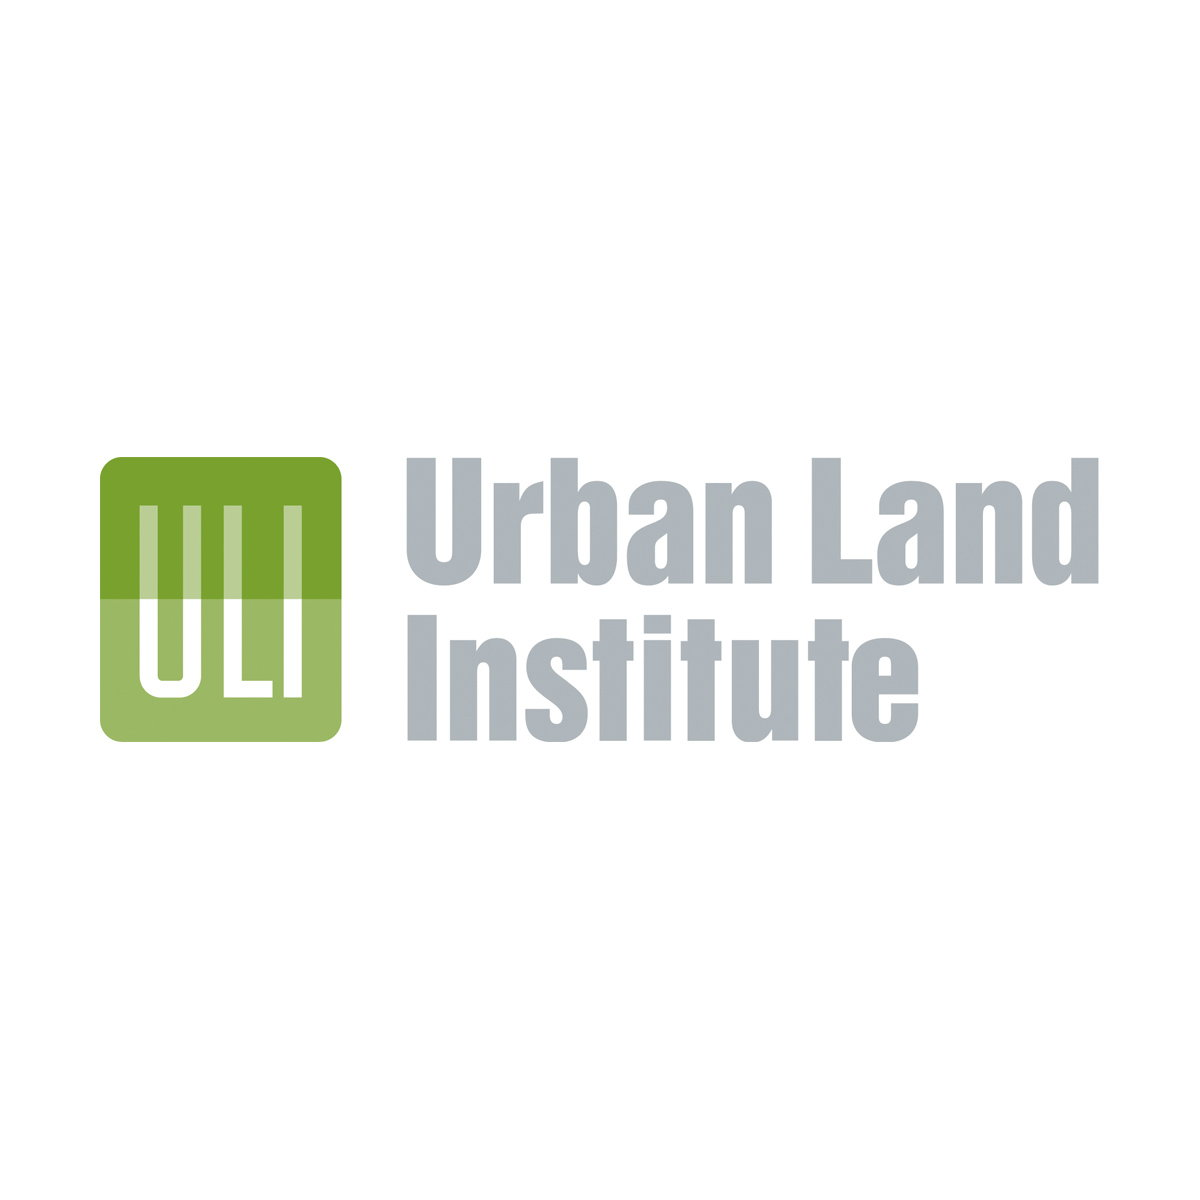 Urban Land Institute Global Awards for Excellence 2016 - Call for Entries